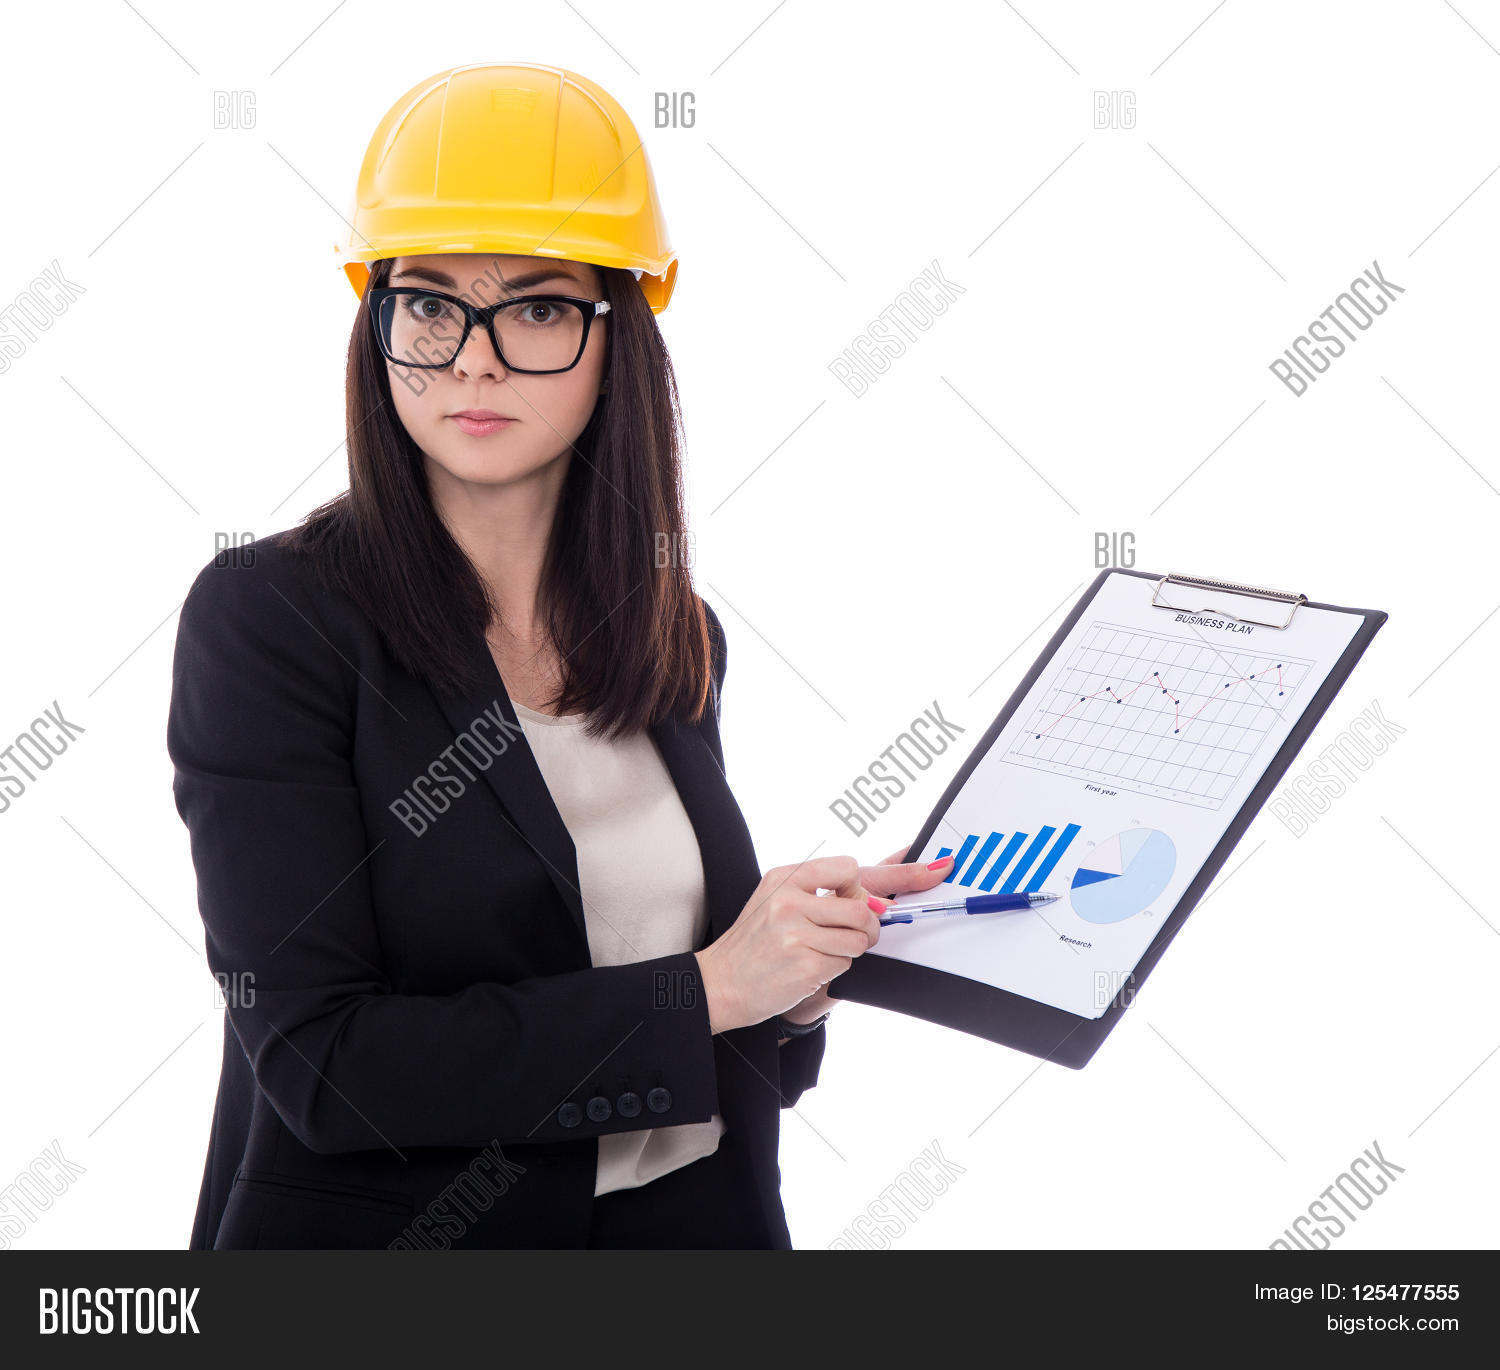 493c7882b95 Business Woman Architect In Yellow Helmet Holding Clipboard With Business  Plan Isolated On White